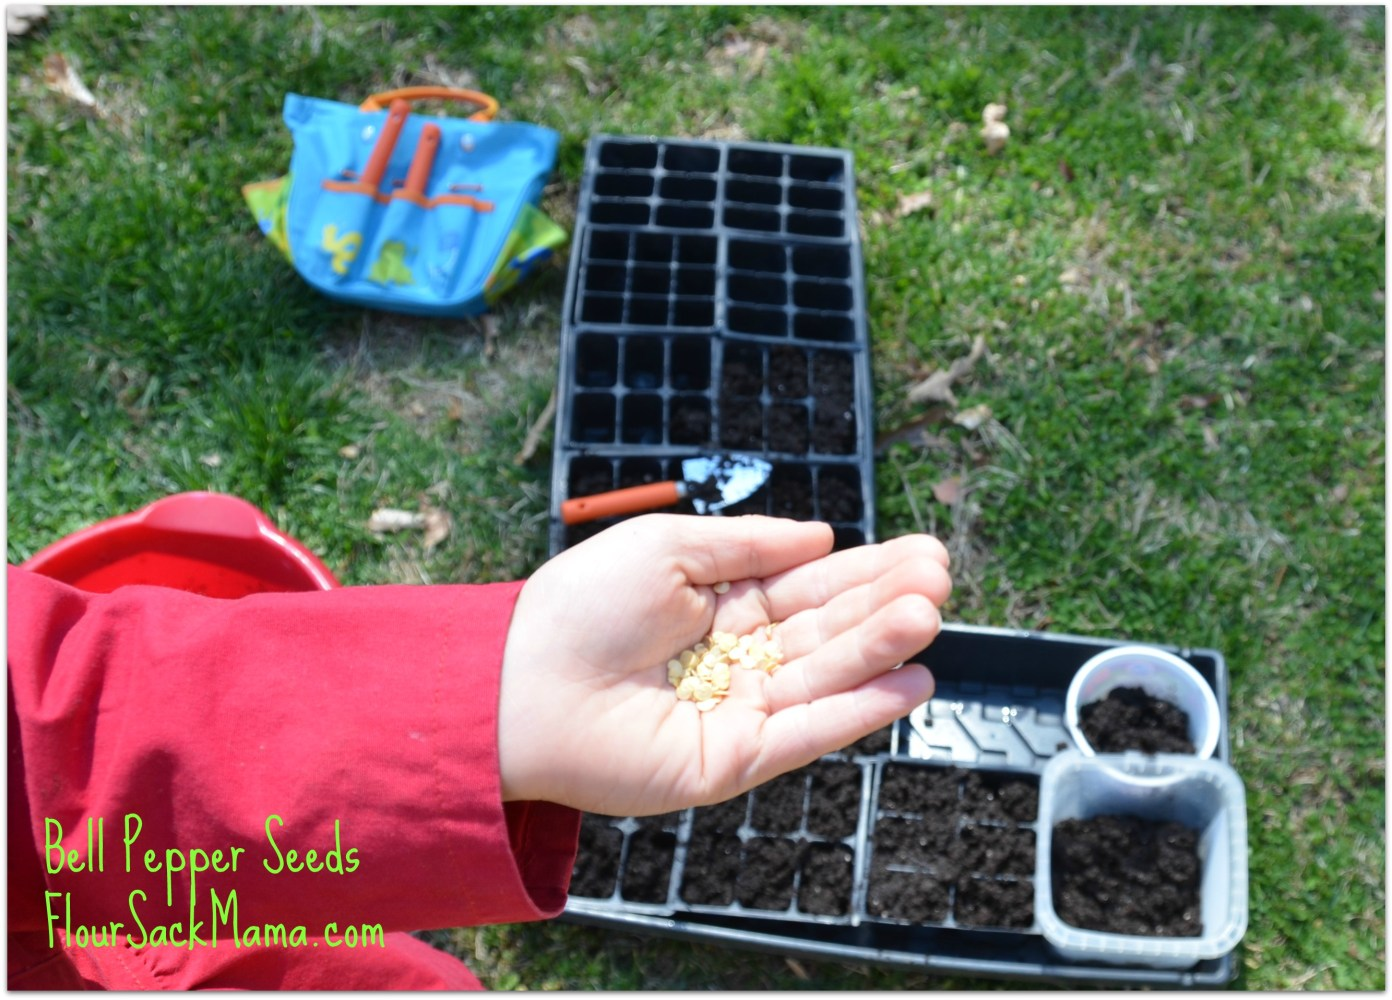 seeds in hand, seed starting tools